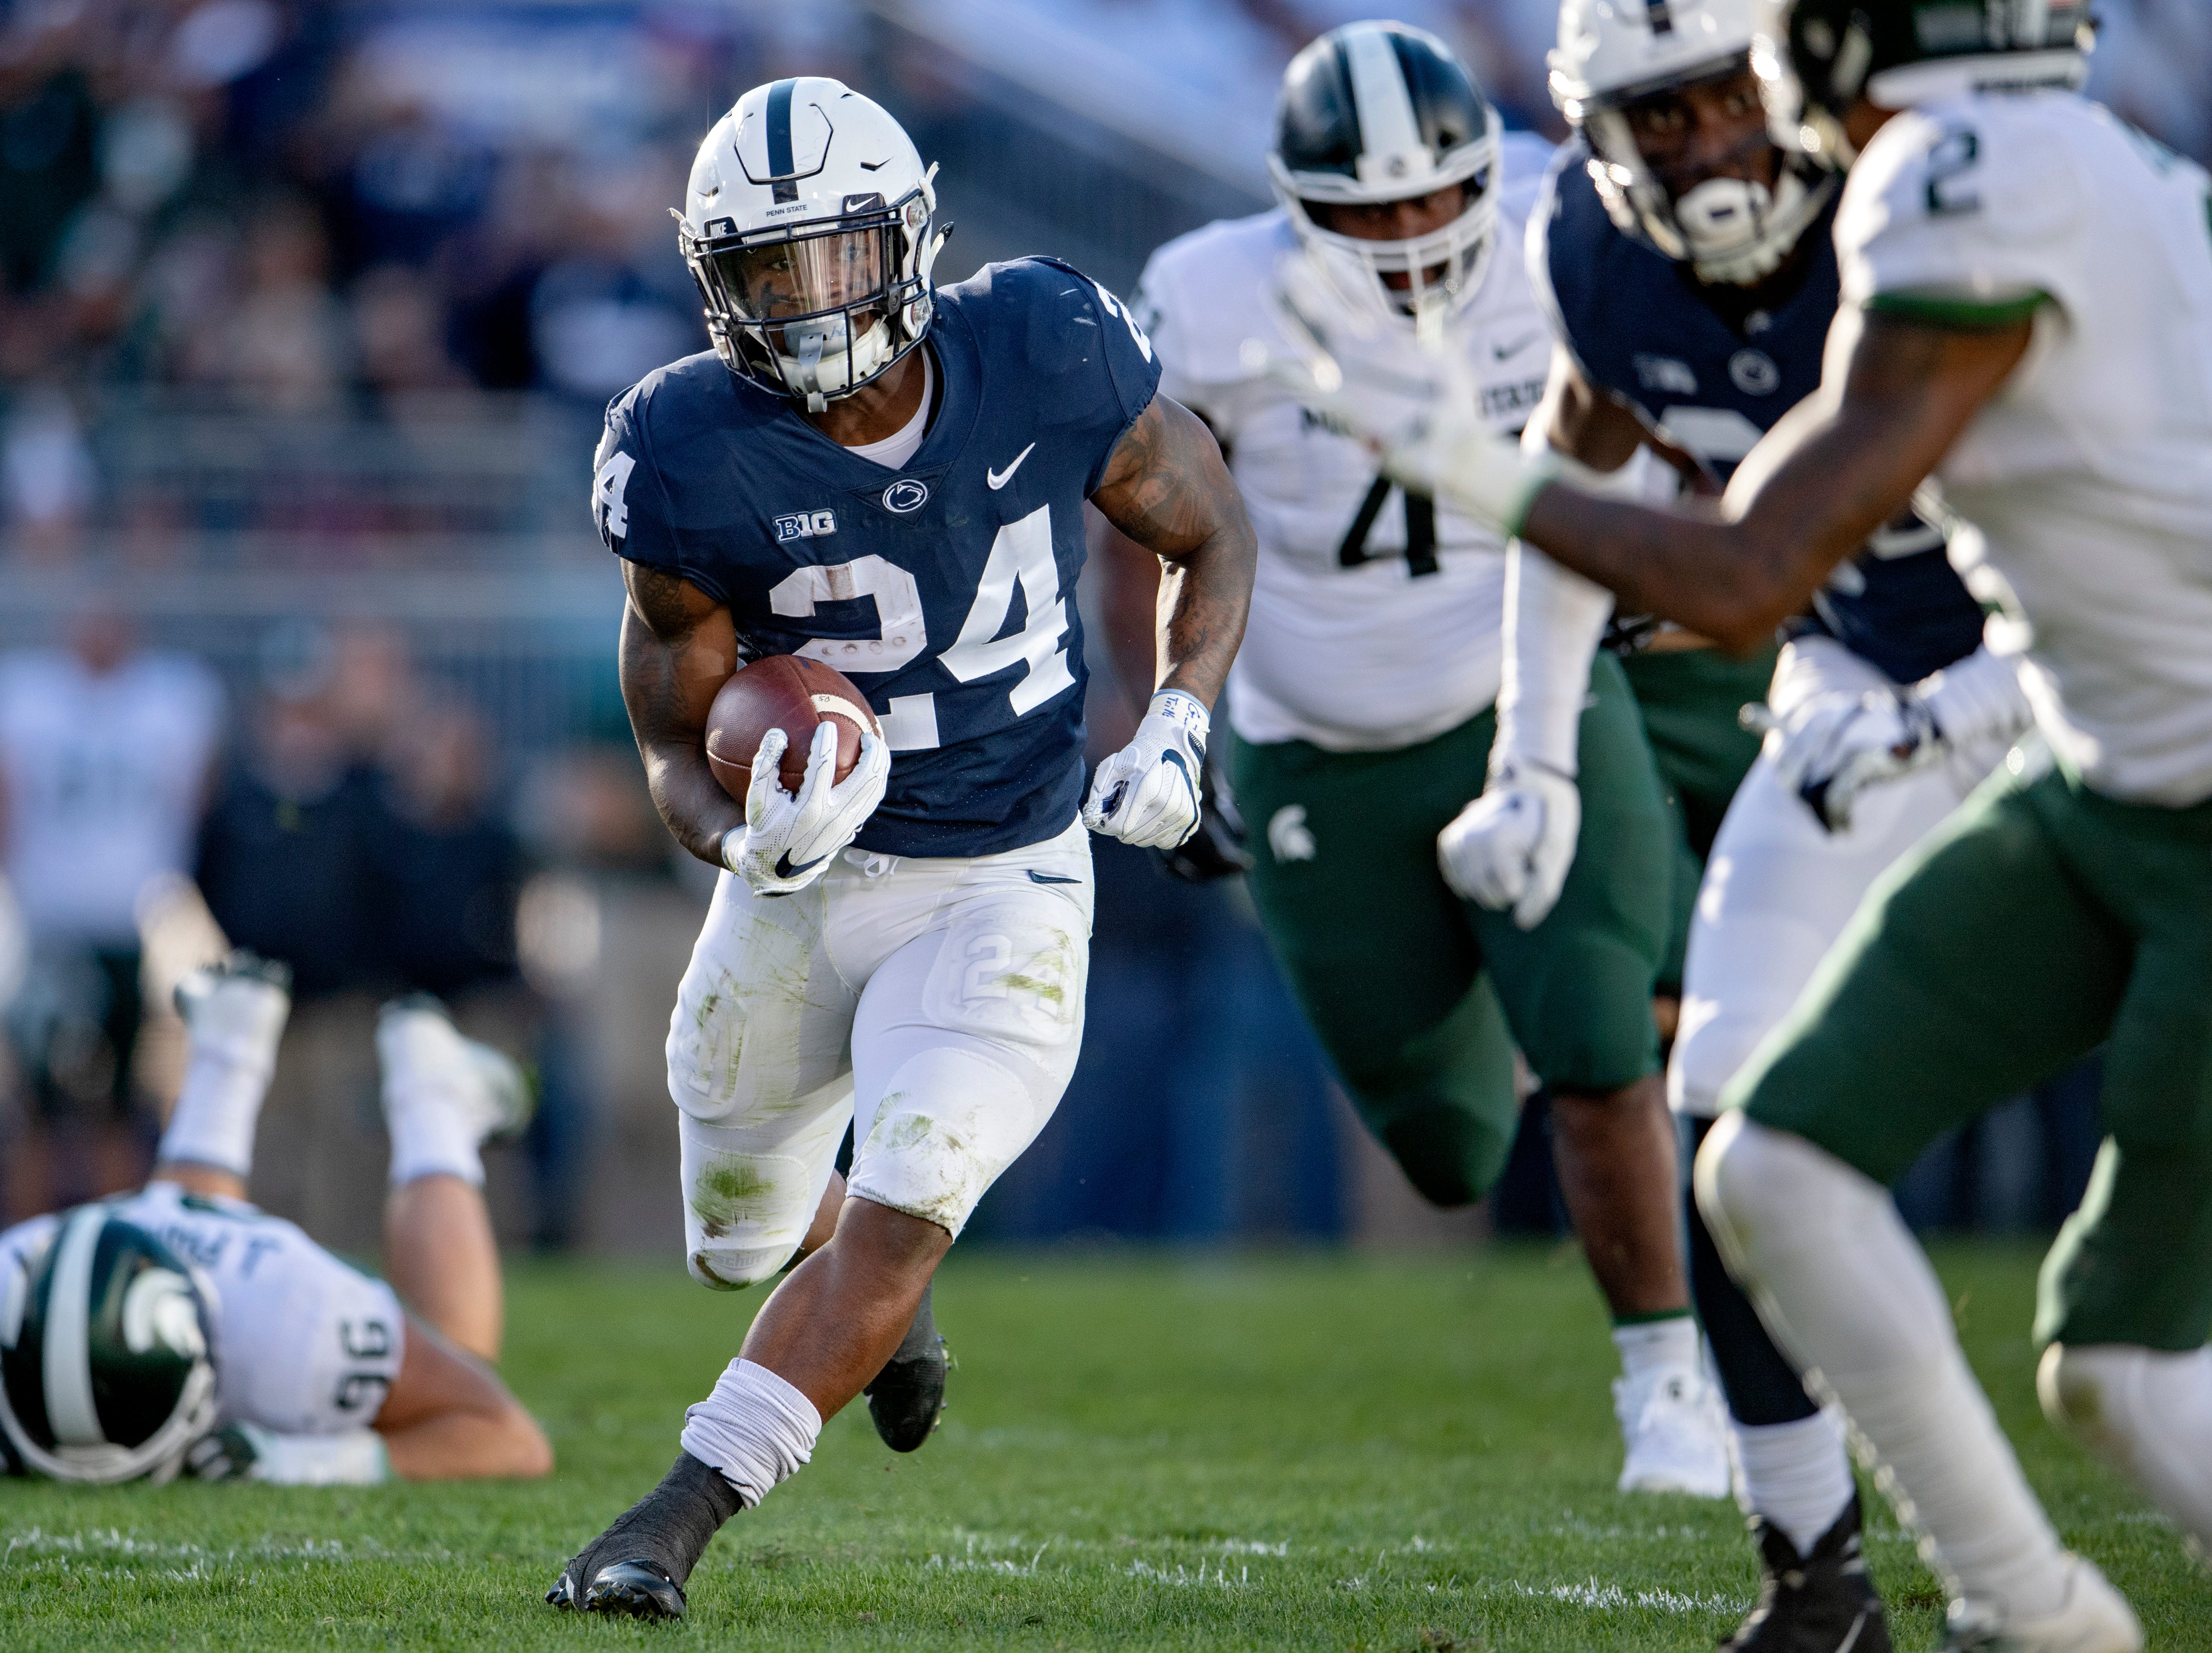 Penn State running back Miles Sanders runs downfield while dodging Michigan State defenders for a touchdown during an NCAA college football game Saturday, Oct. 13, 2018, in State College, Pa.